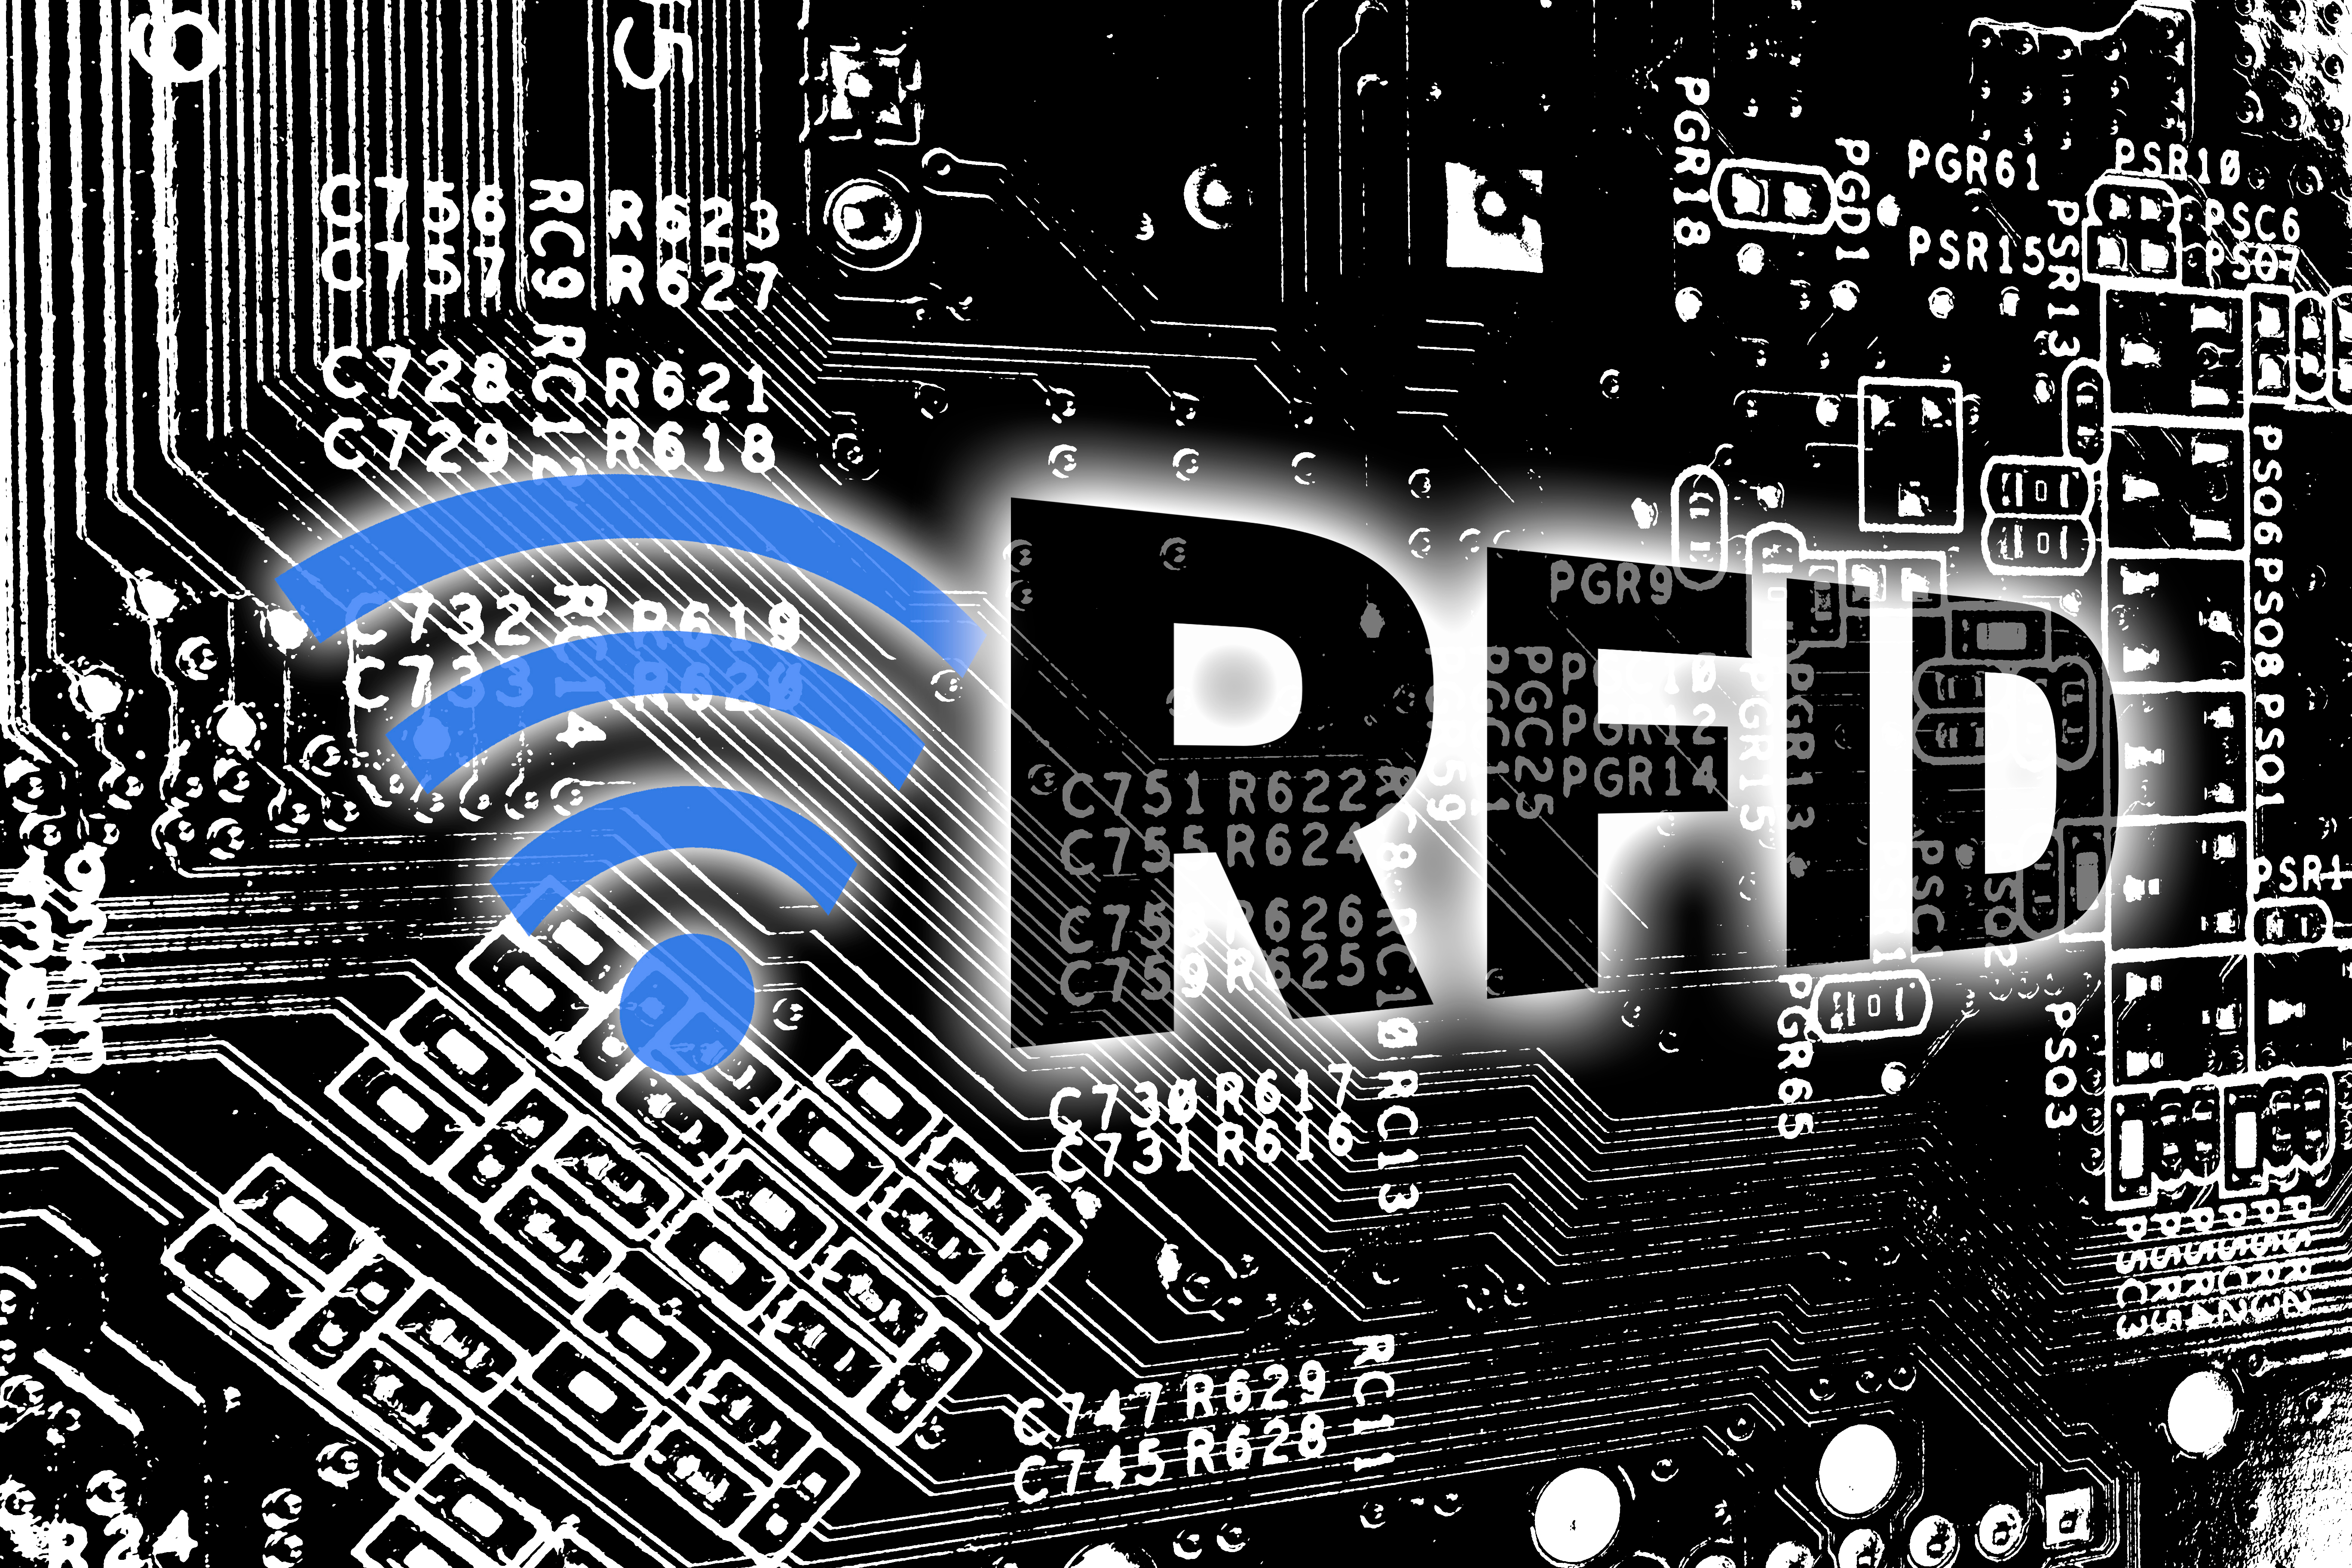 check the post:Touchless Interfaces: NFC vs. RFID for a description of the image